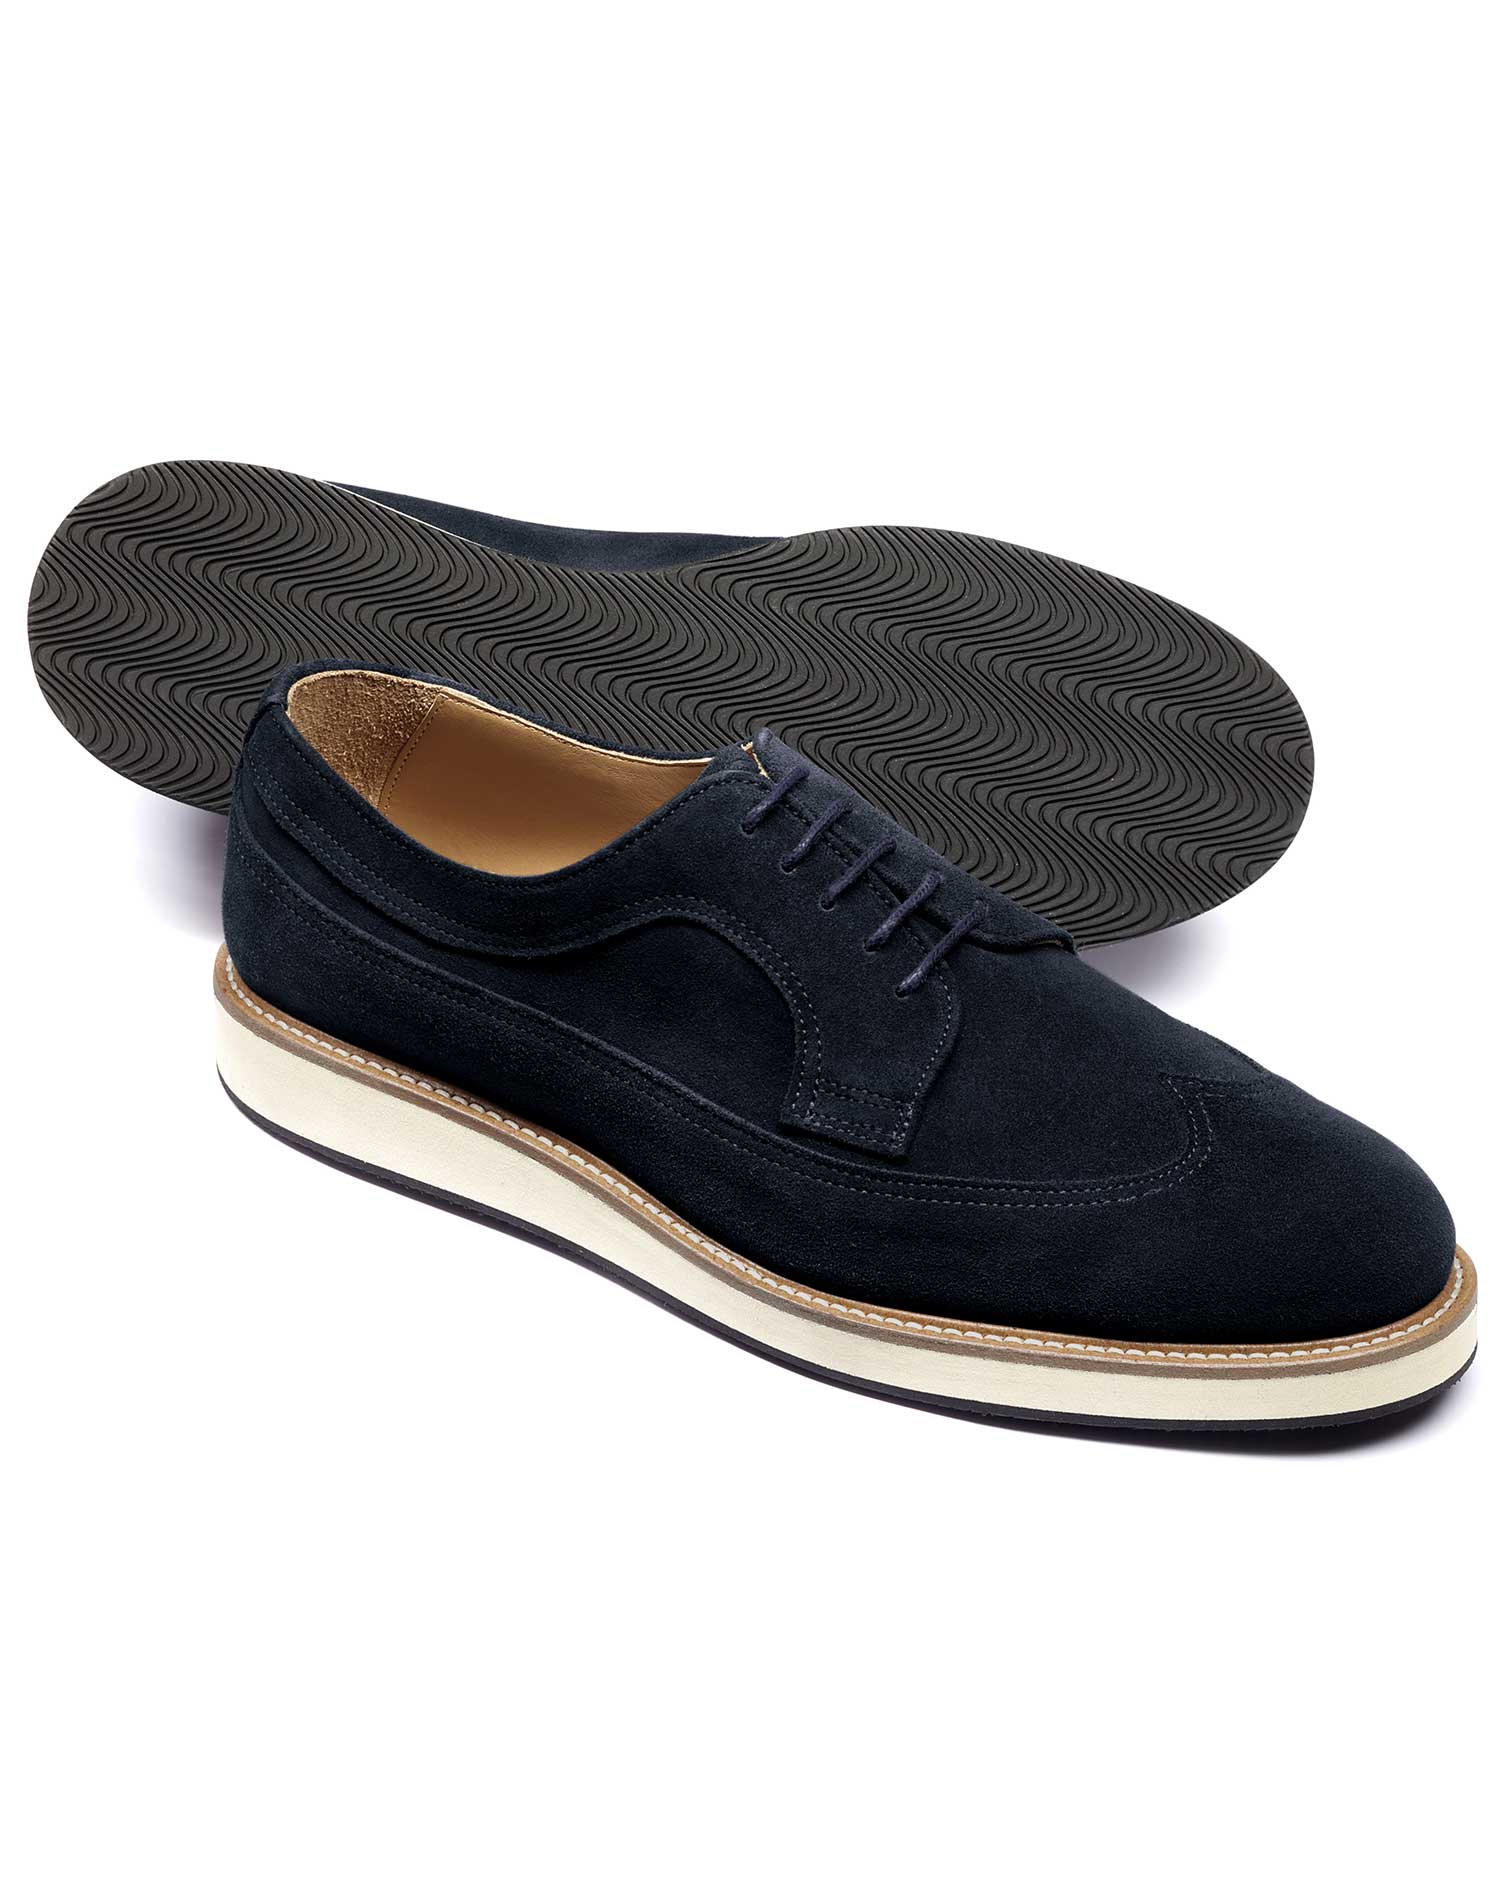 Navy Suede Lightweight Winged Derby Shoe Size 13 R by Charles Tyrwhitt